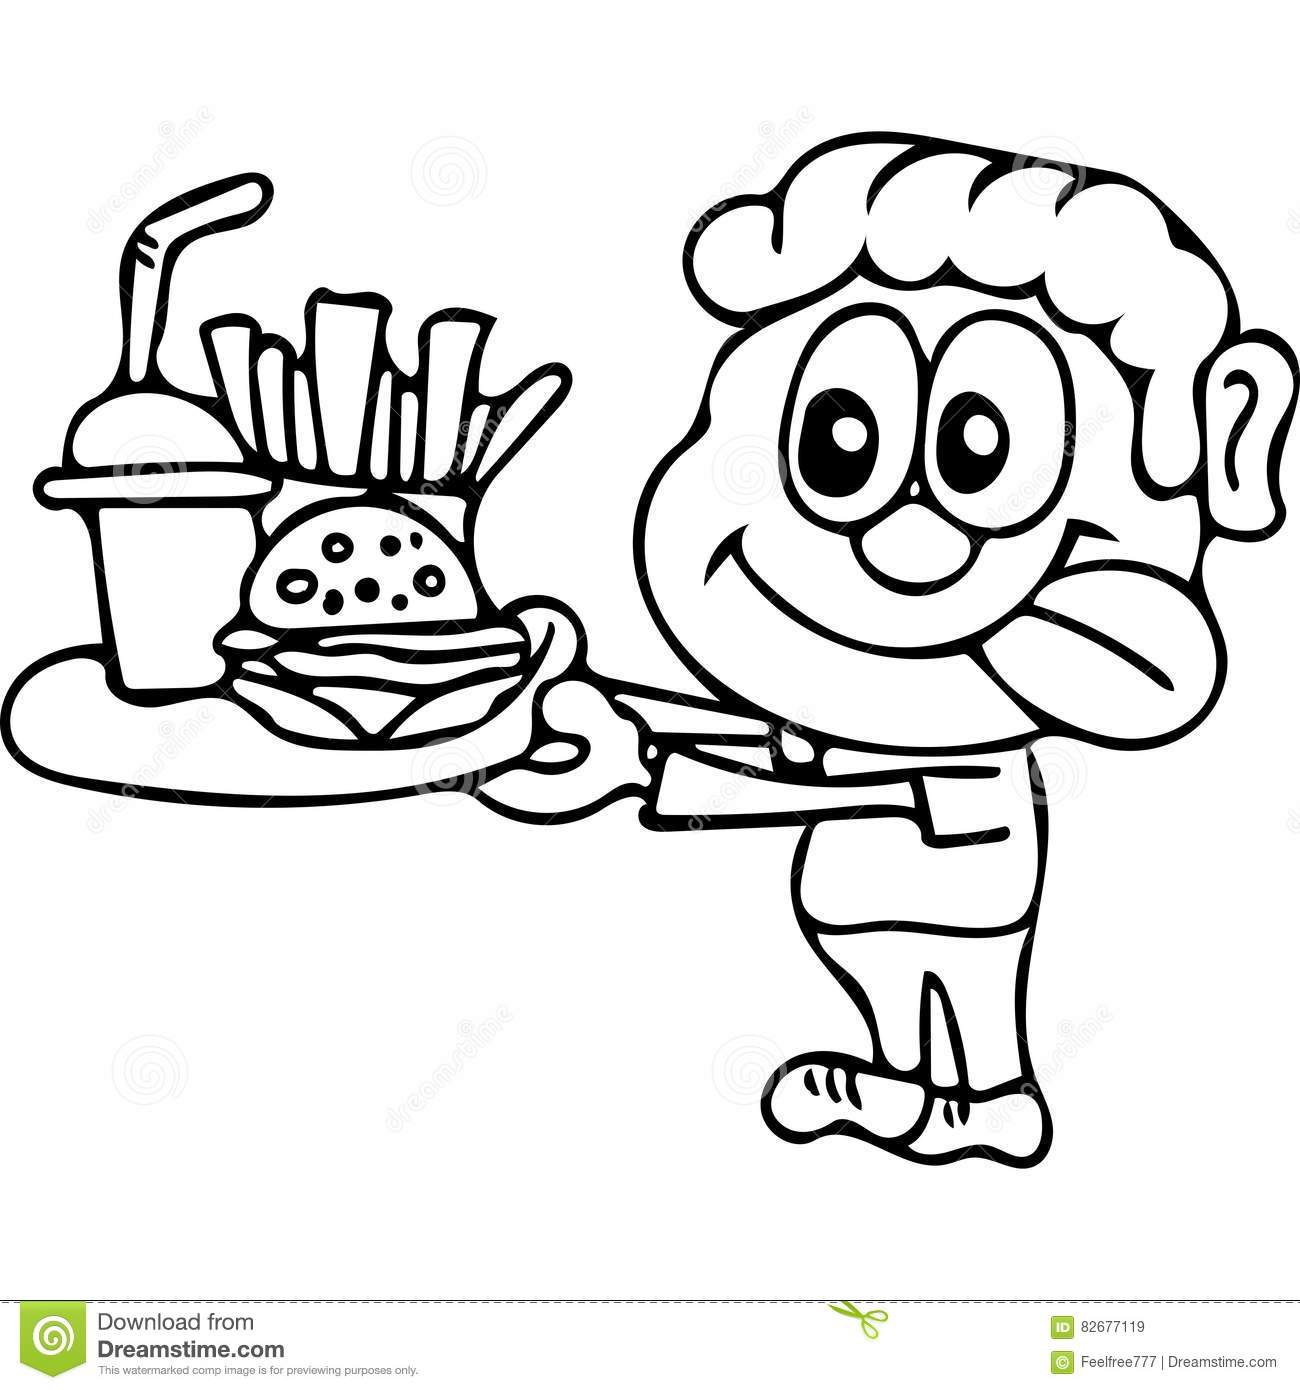 Unhealthy Food Coloring Pages At Getcolorings